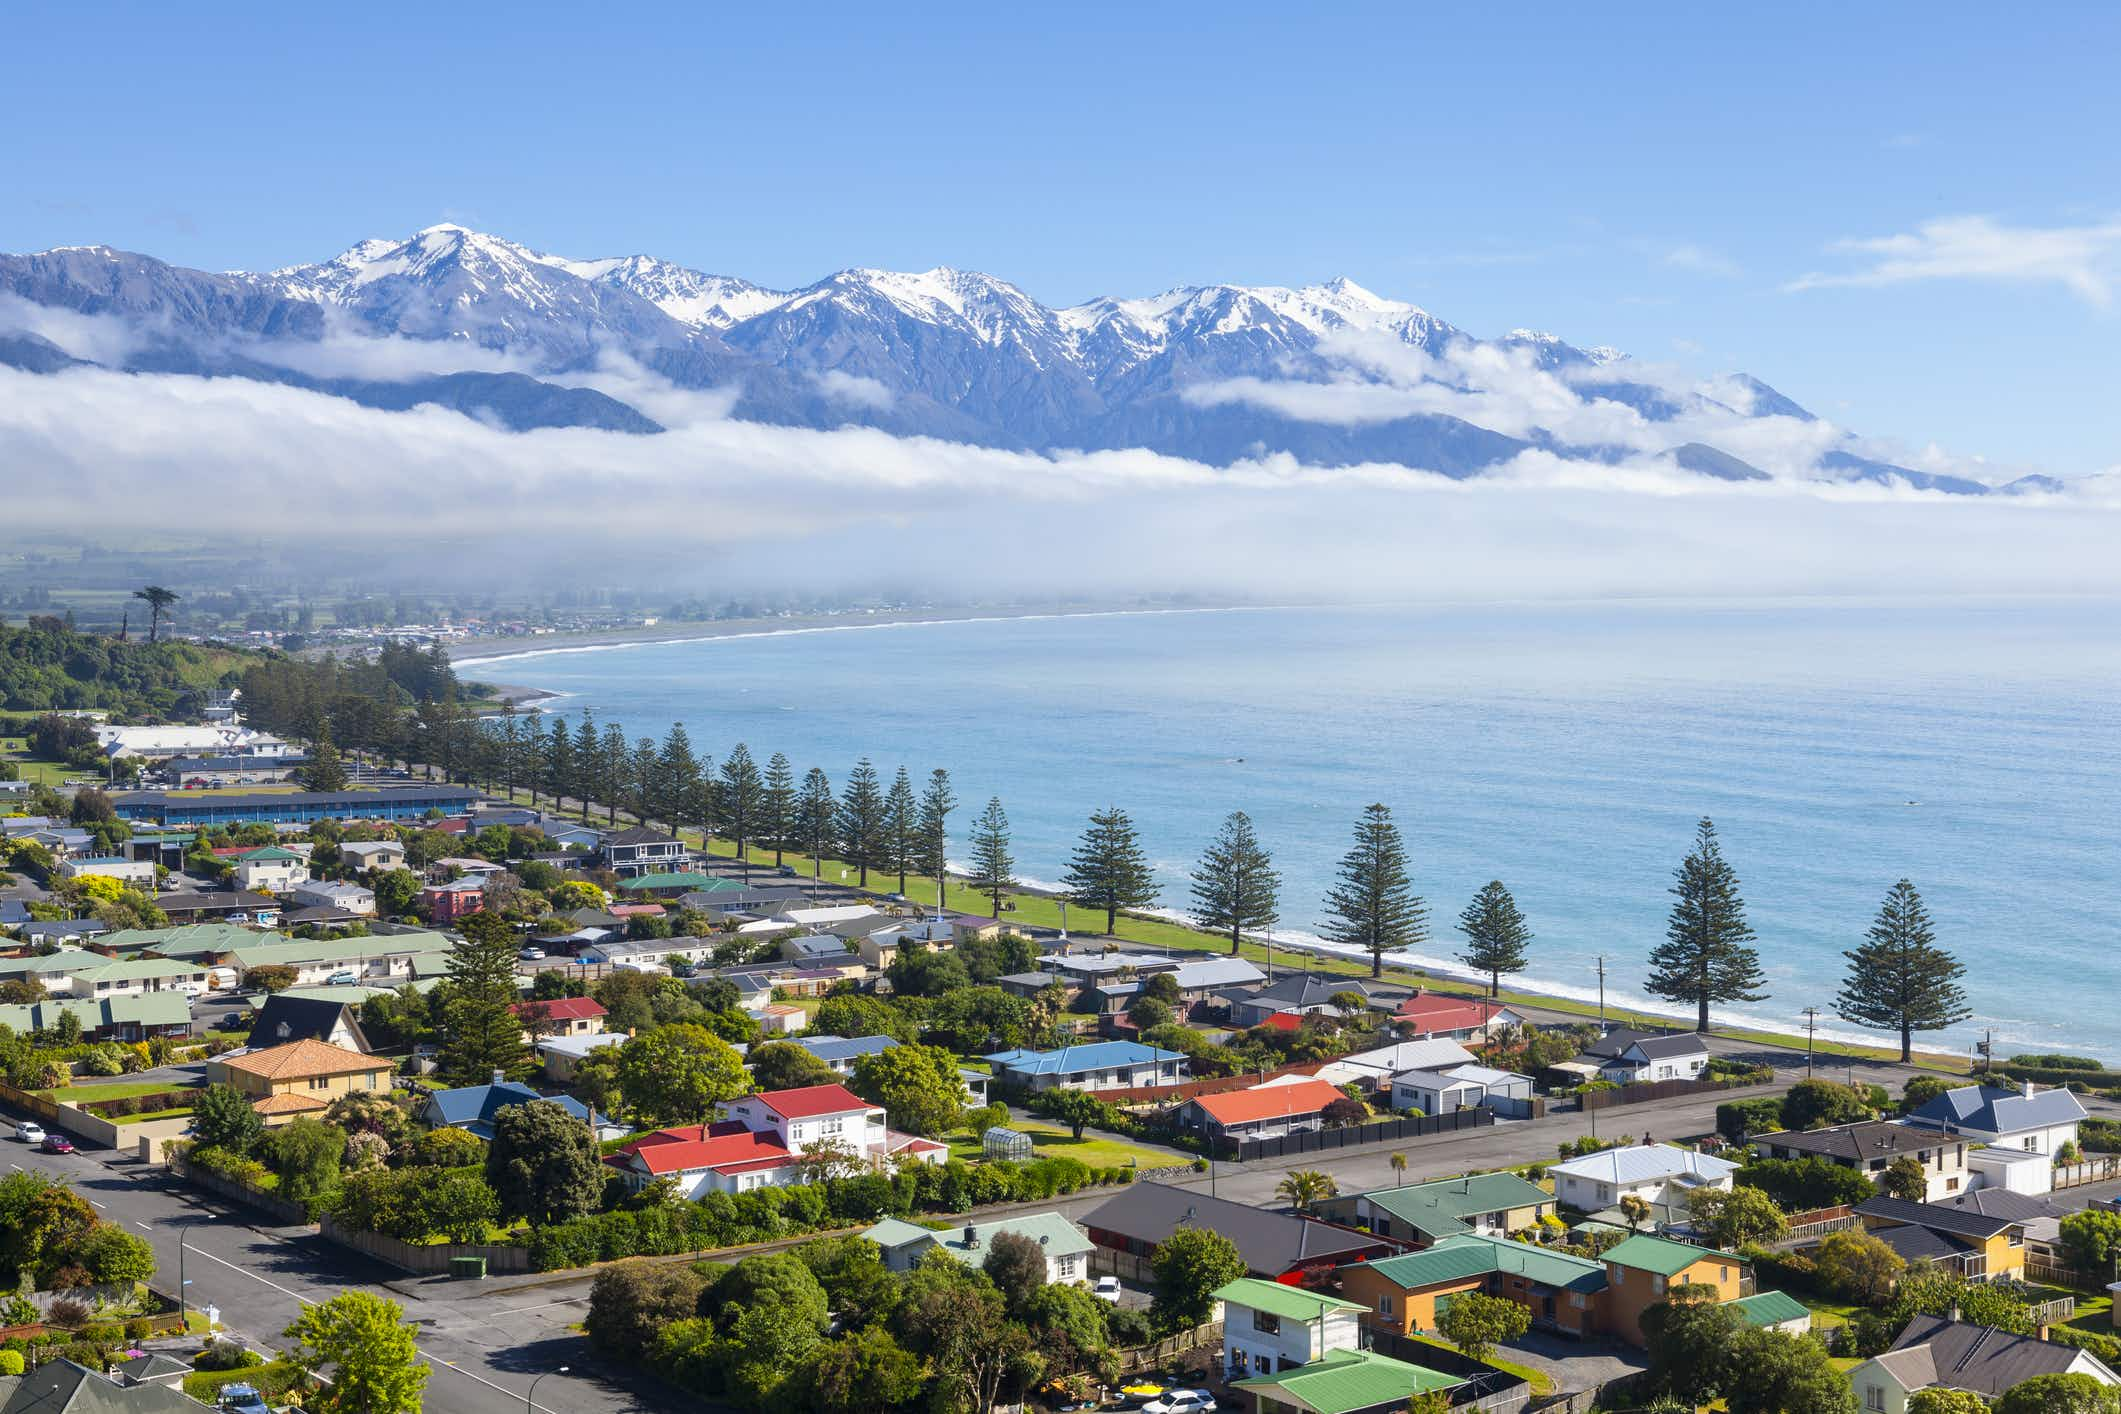 Reaching Kaikoura in New Zealand has again become straightforward for travellers